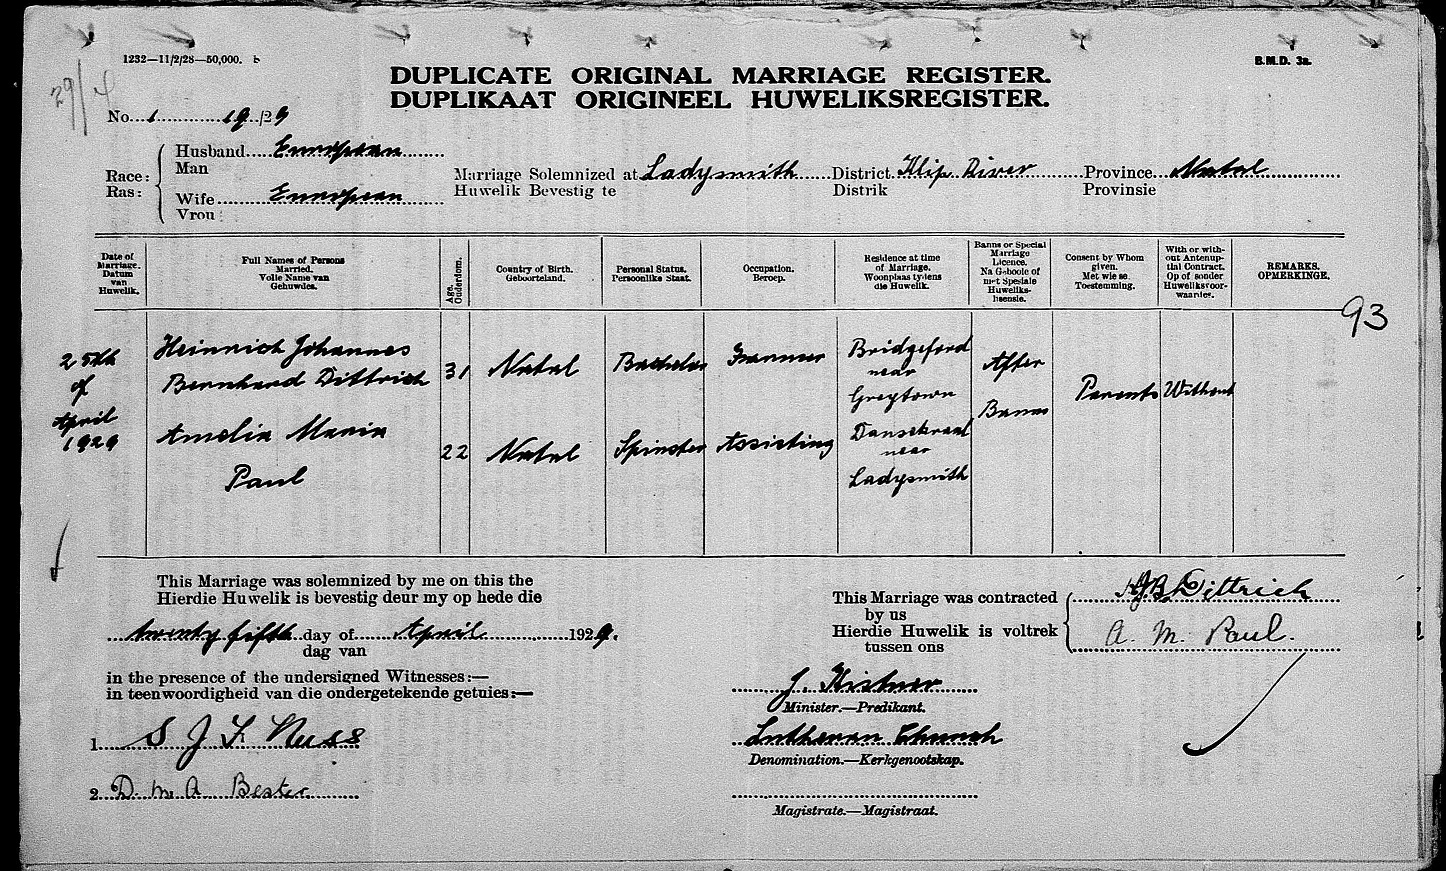 Marriage Certificate For Heinrich Dittrich And Amelia Paul